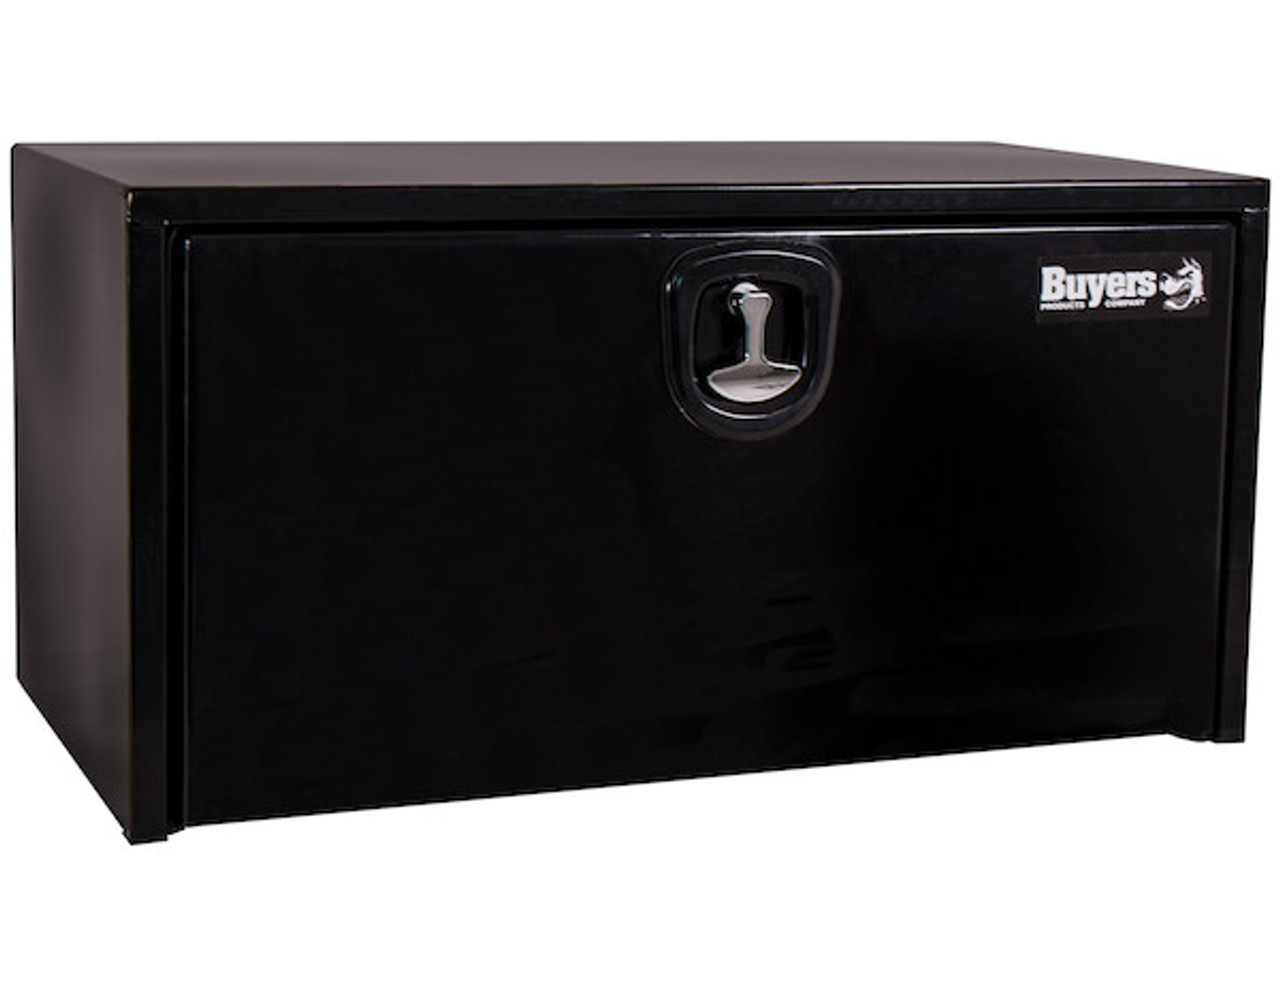 """1732305 BUYERS PRODUCTS BLACK STEEL UNDERBODY TRUCK TOOLBOX WITH 3-POINT LATCH 18""""Hx18""""Dx36""""W"""